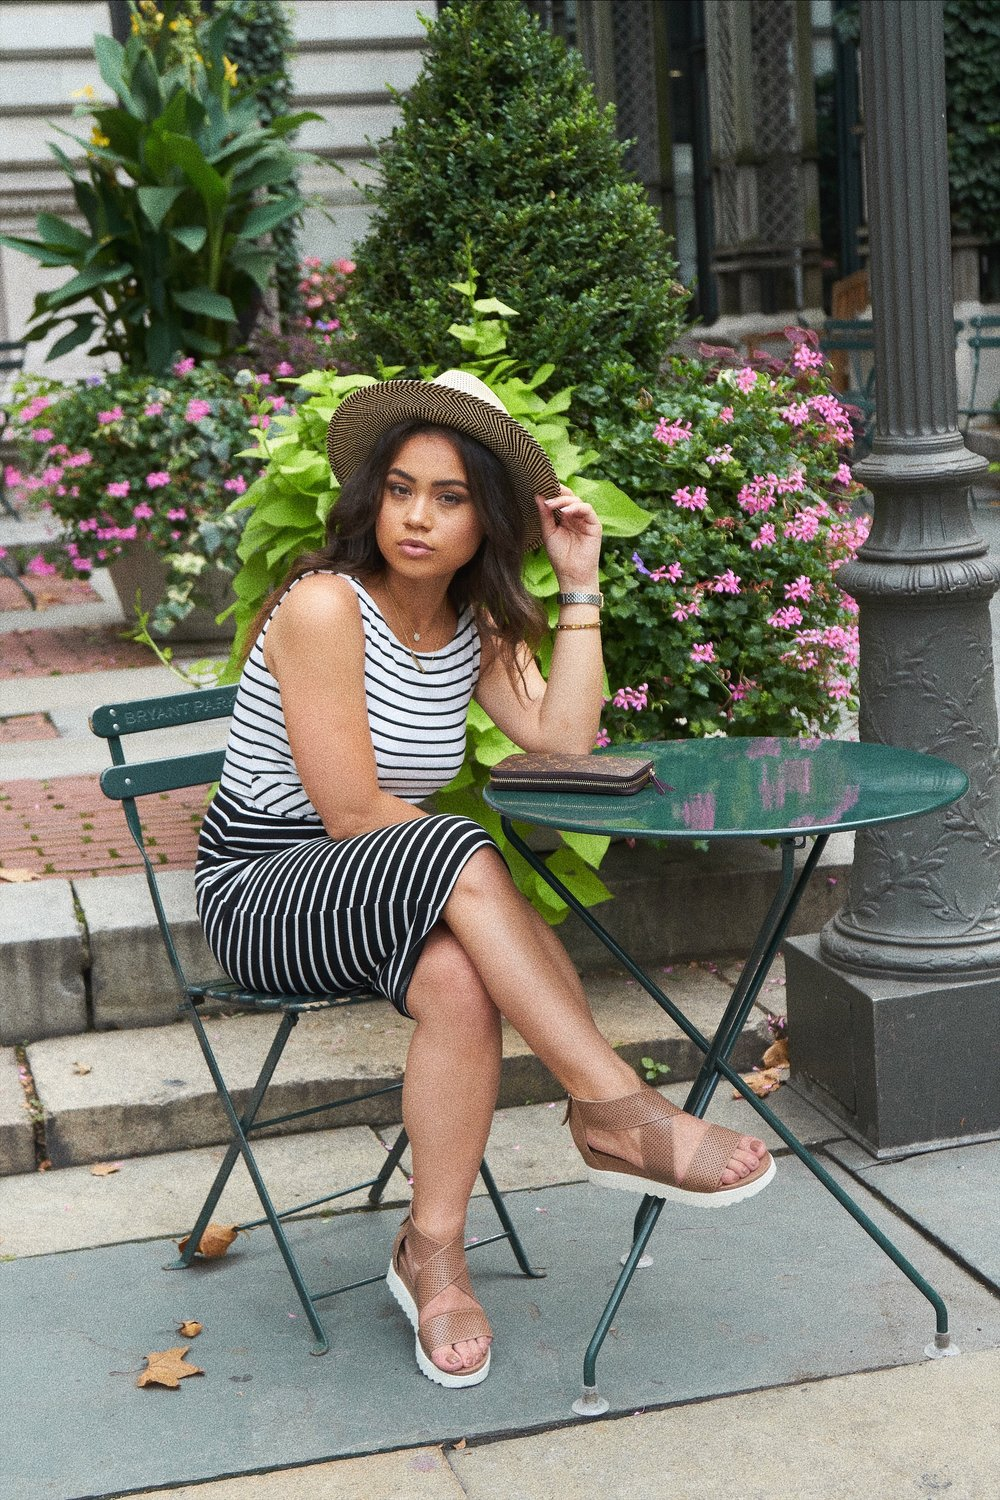 STYLING A FEDORA HAT WITH A STRIPE DRESS